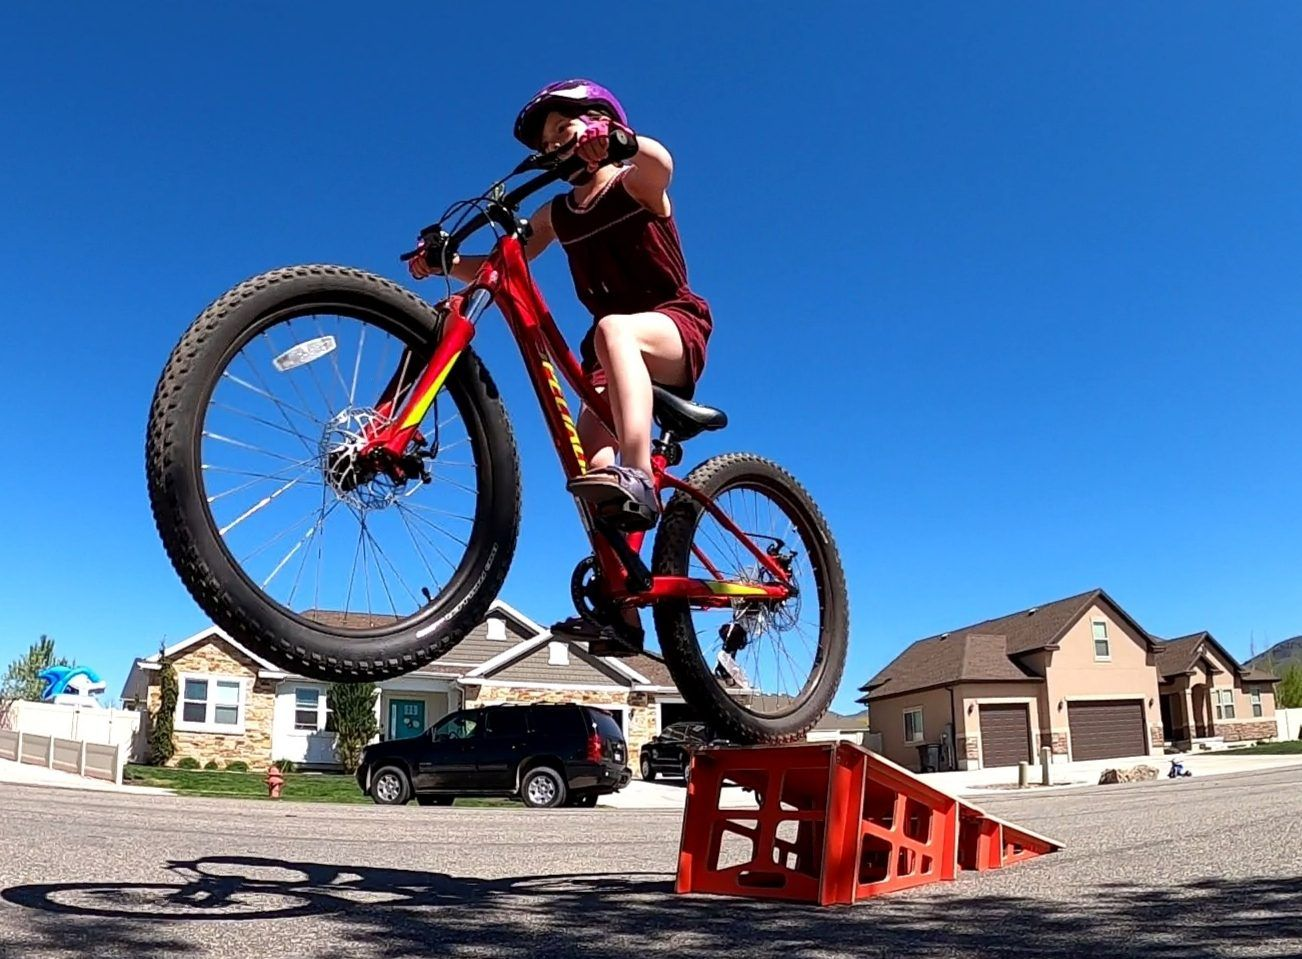 8 year old girl riding a mountain bike off a Byclex kicker ramp. The Yumpy is one of our favorite kids bike ramps.